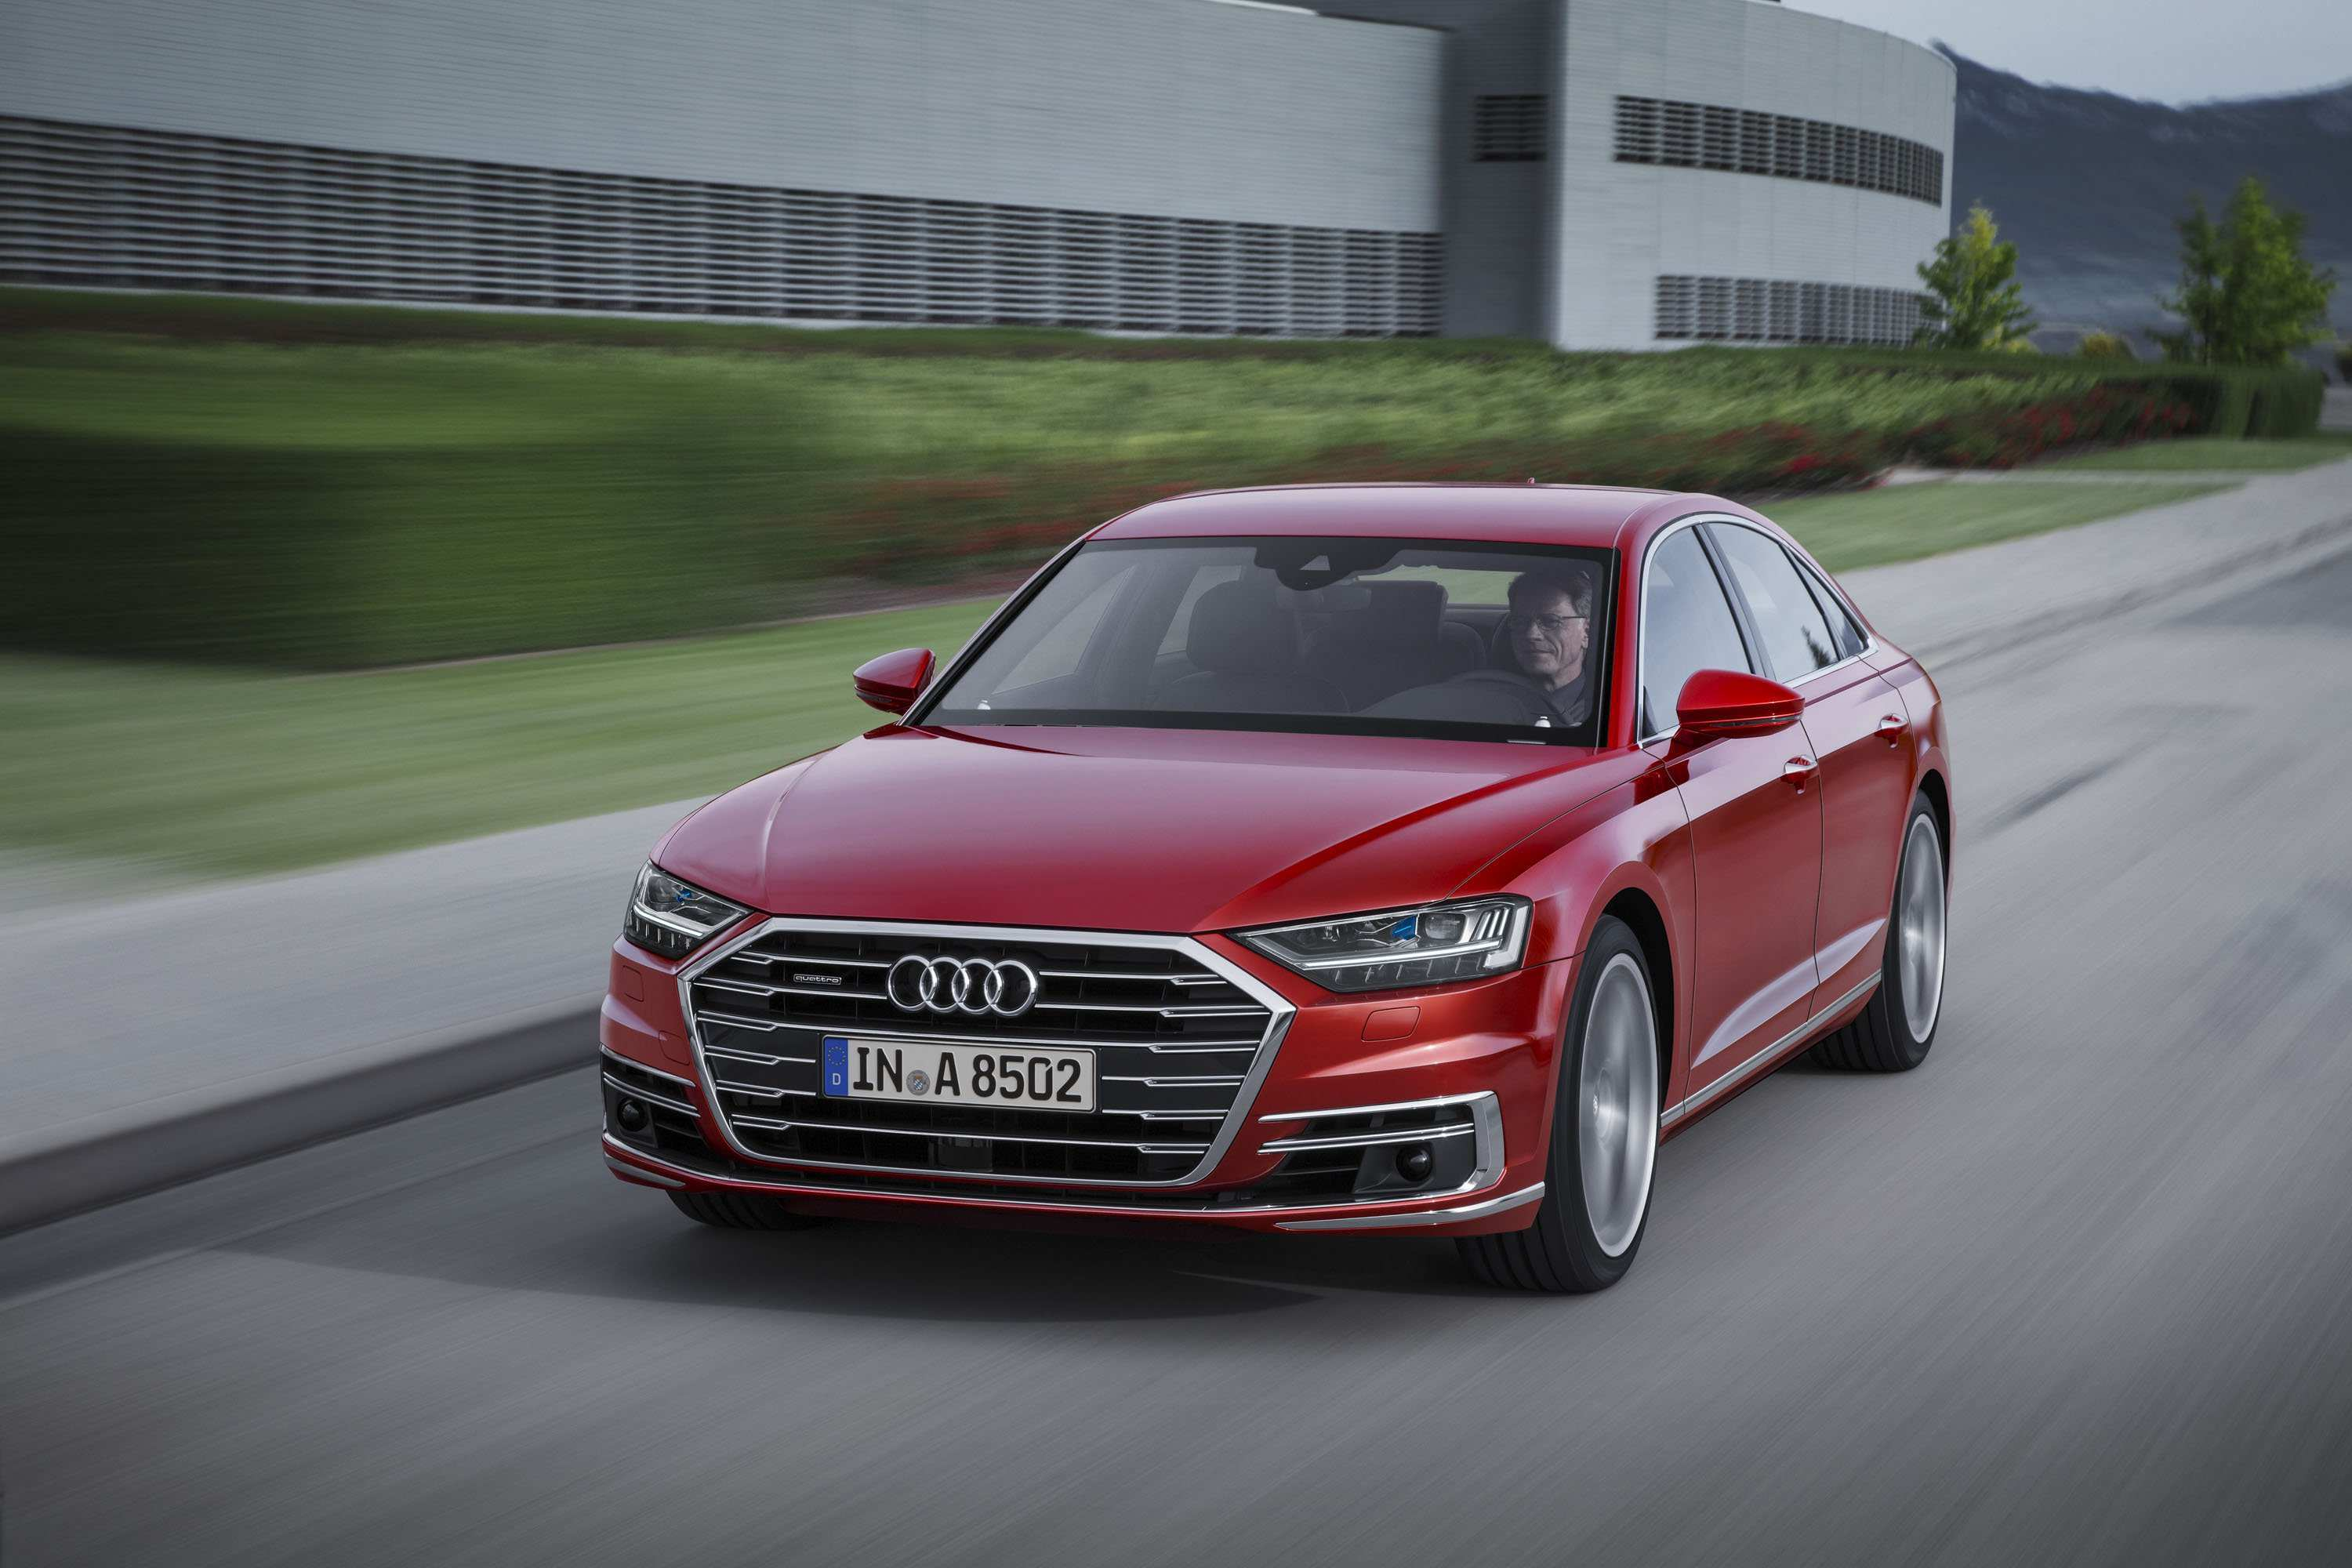 85 Best Review 2020 Audi A8 2020 Performance and New Engine with 2020 Audi A8 2020